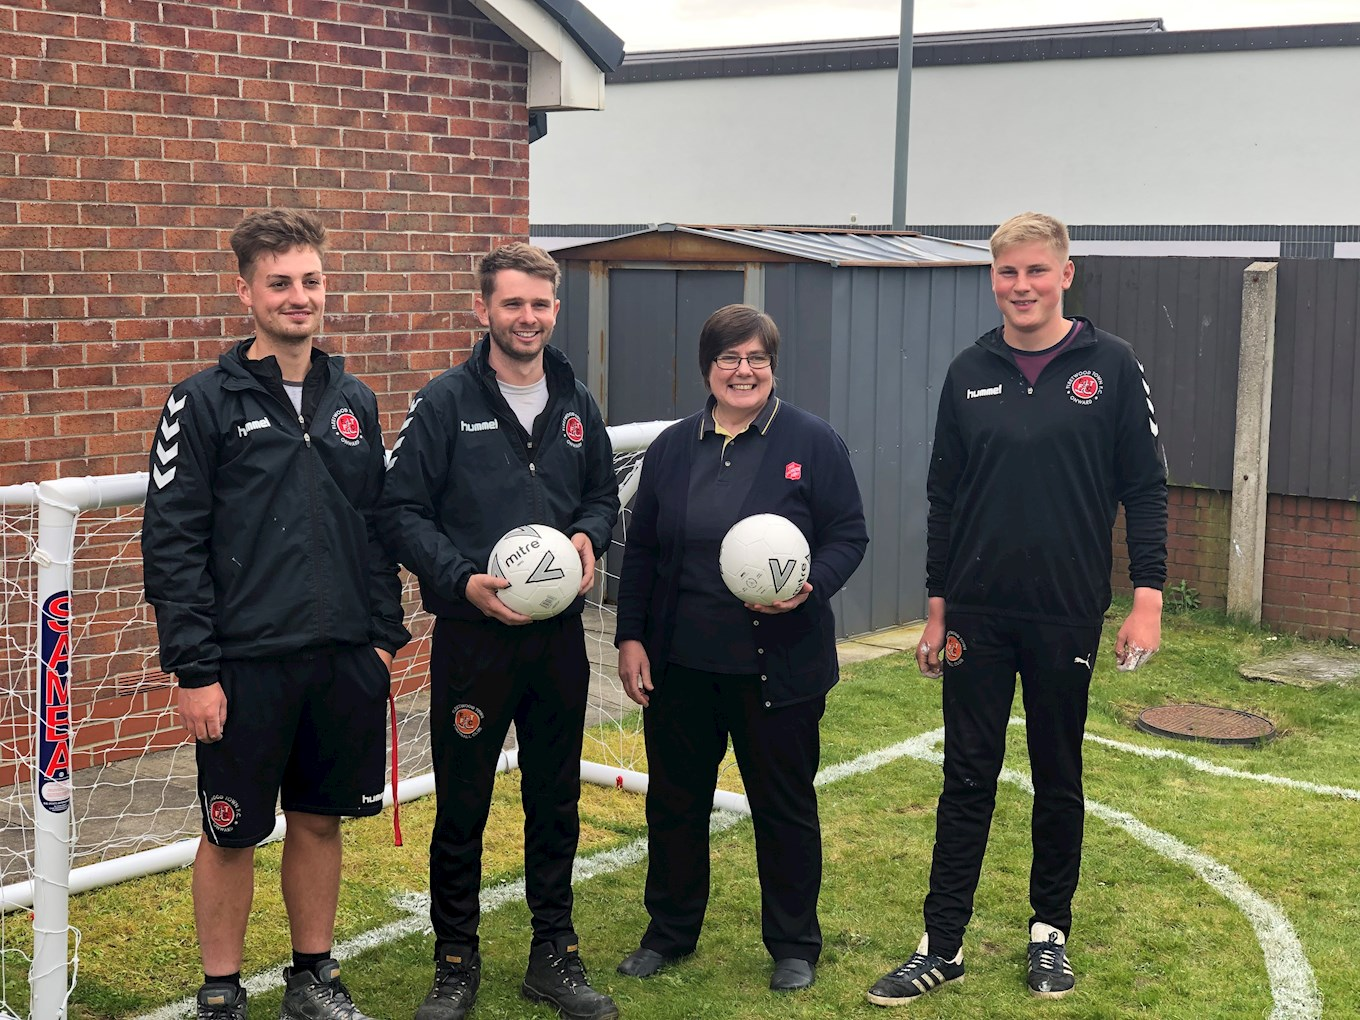 Salvation Army Chaplain Major Maggie Cadogan with Fleetwood Town grounds staff Liam Scott-Rattray, Nick Hyndman, and Max Knapman on the new pitch.jpg